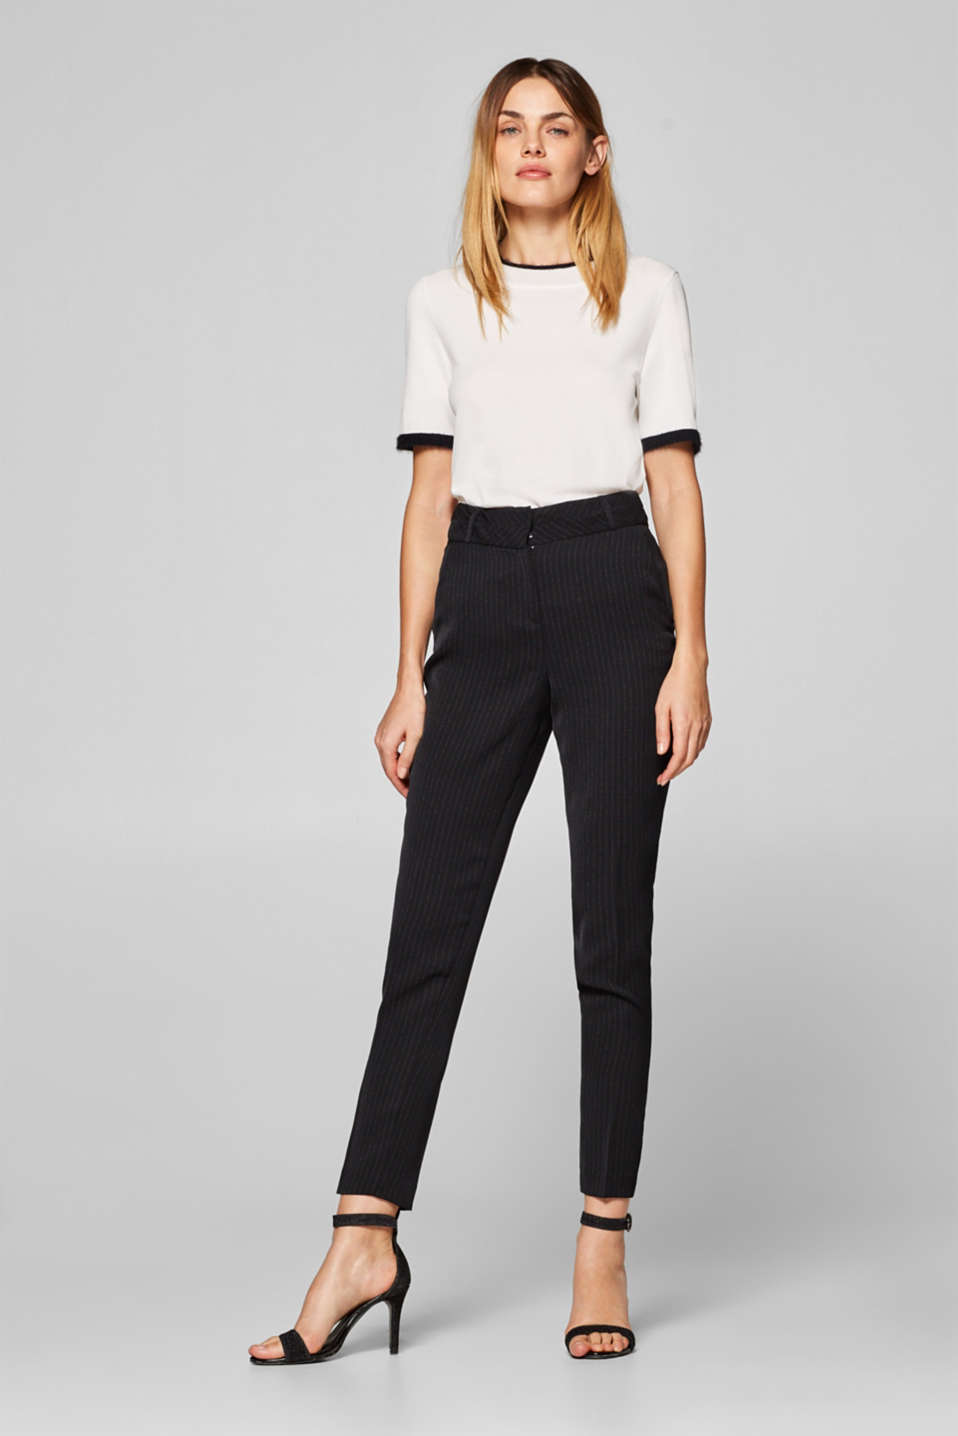 Esprit - PINSTRIPED Mix + Match trousers with a high-rise waist